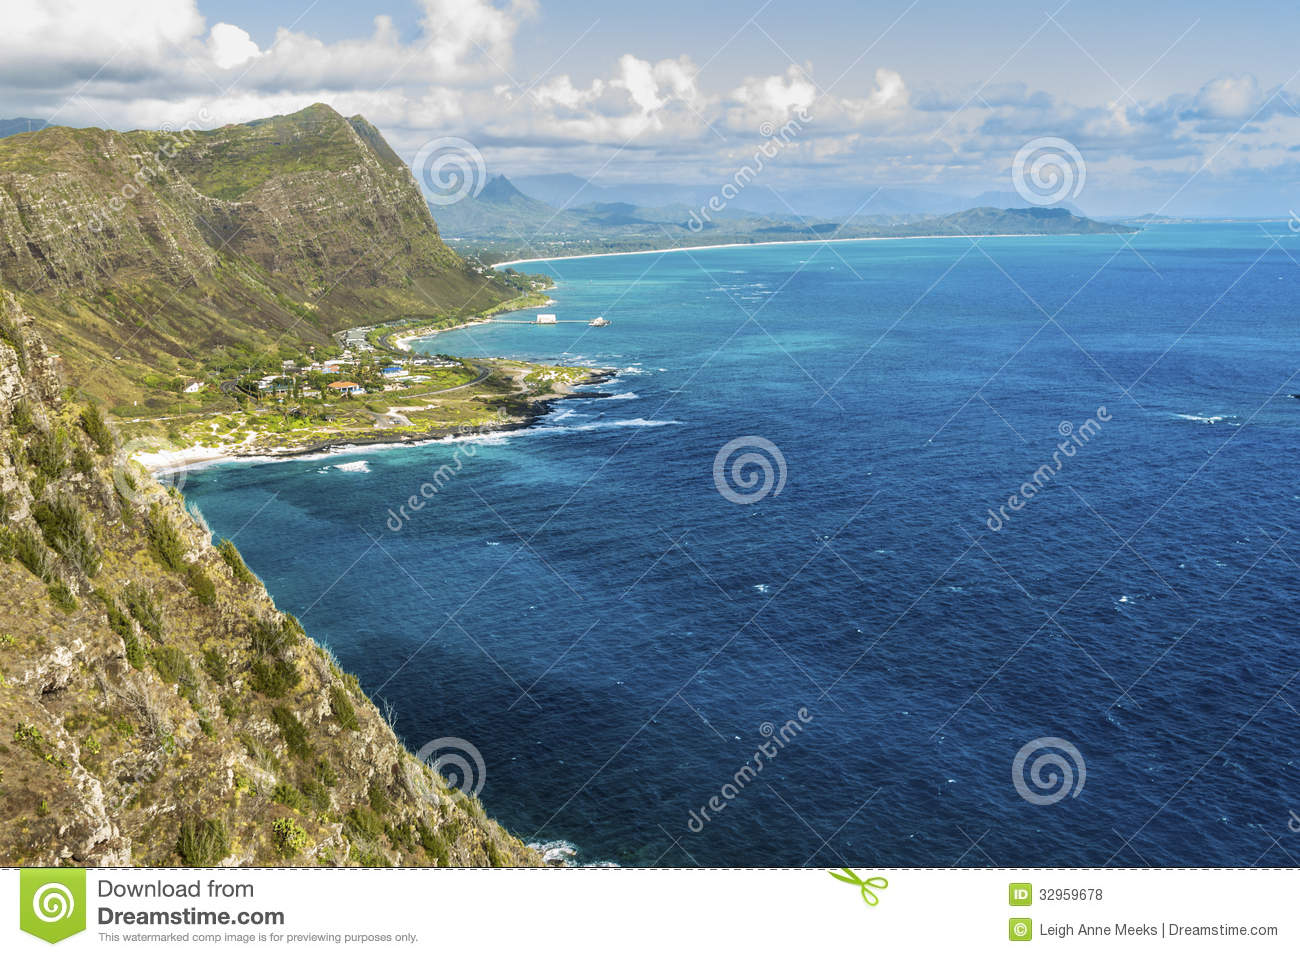 Windward oahu royalty free stock photos image 32959678 The windward